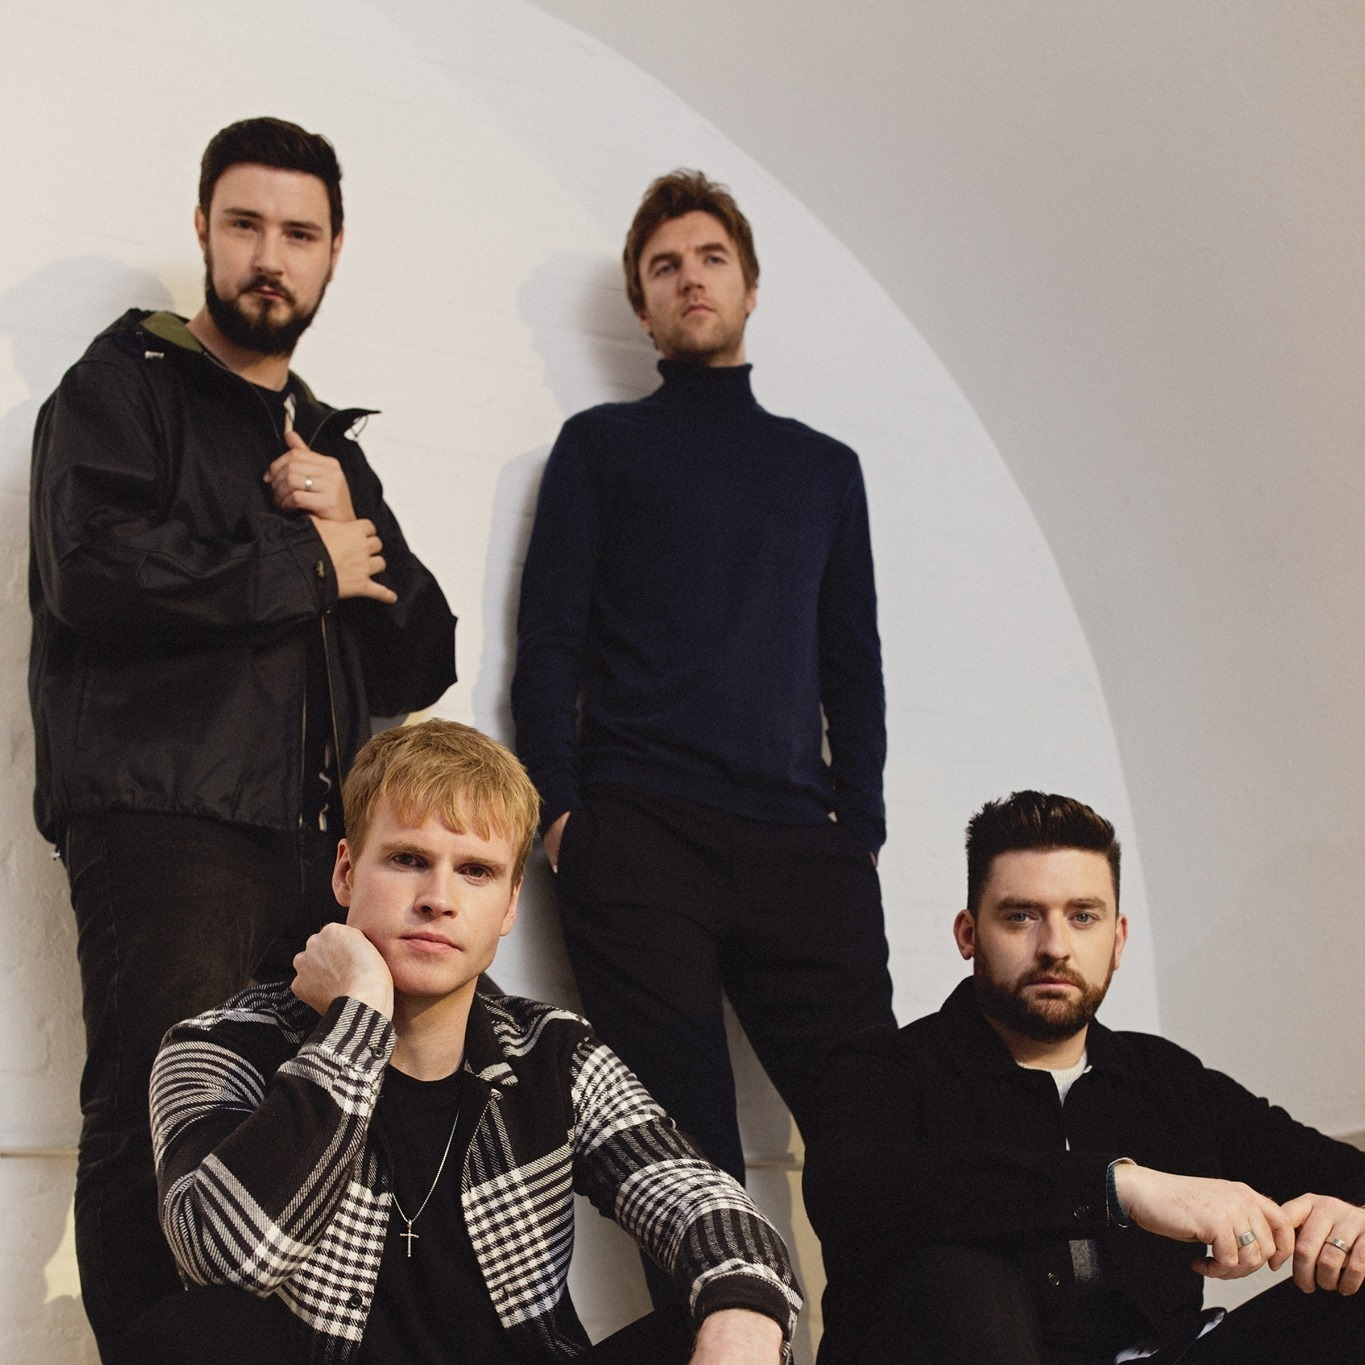 """Kodaline With Their New Deluxe Edition Album """"One Day At A Time"""" - Out Now"""